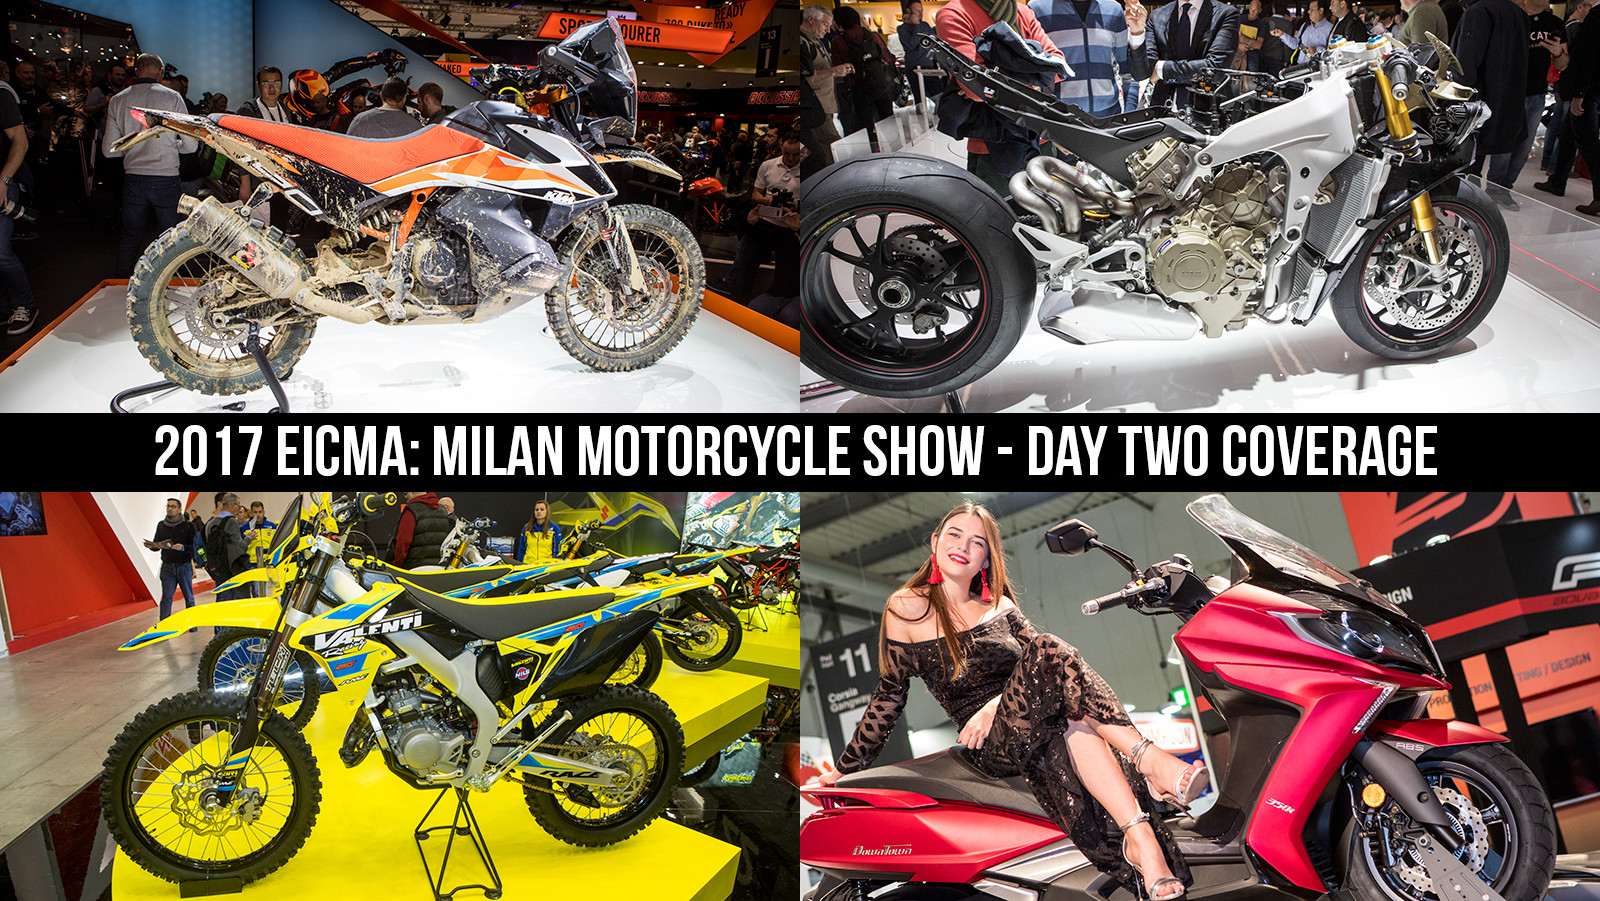 2017 EICMA: Milan Motorcycle Show - Day Two Coverage - 2017 EICMA - Milan Motorcycle Show: Chapter Two - Motocross Pictures - Vital MX